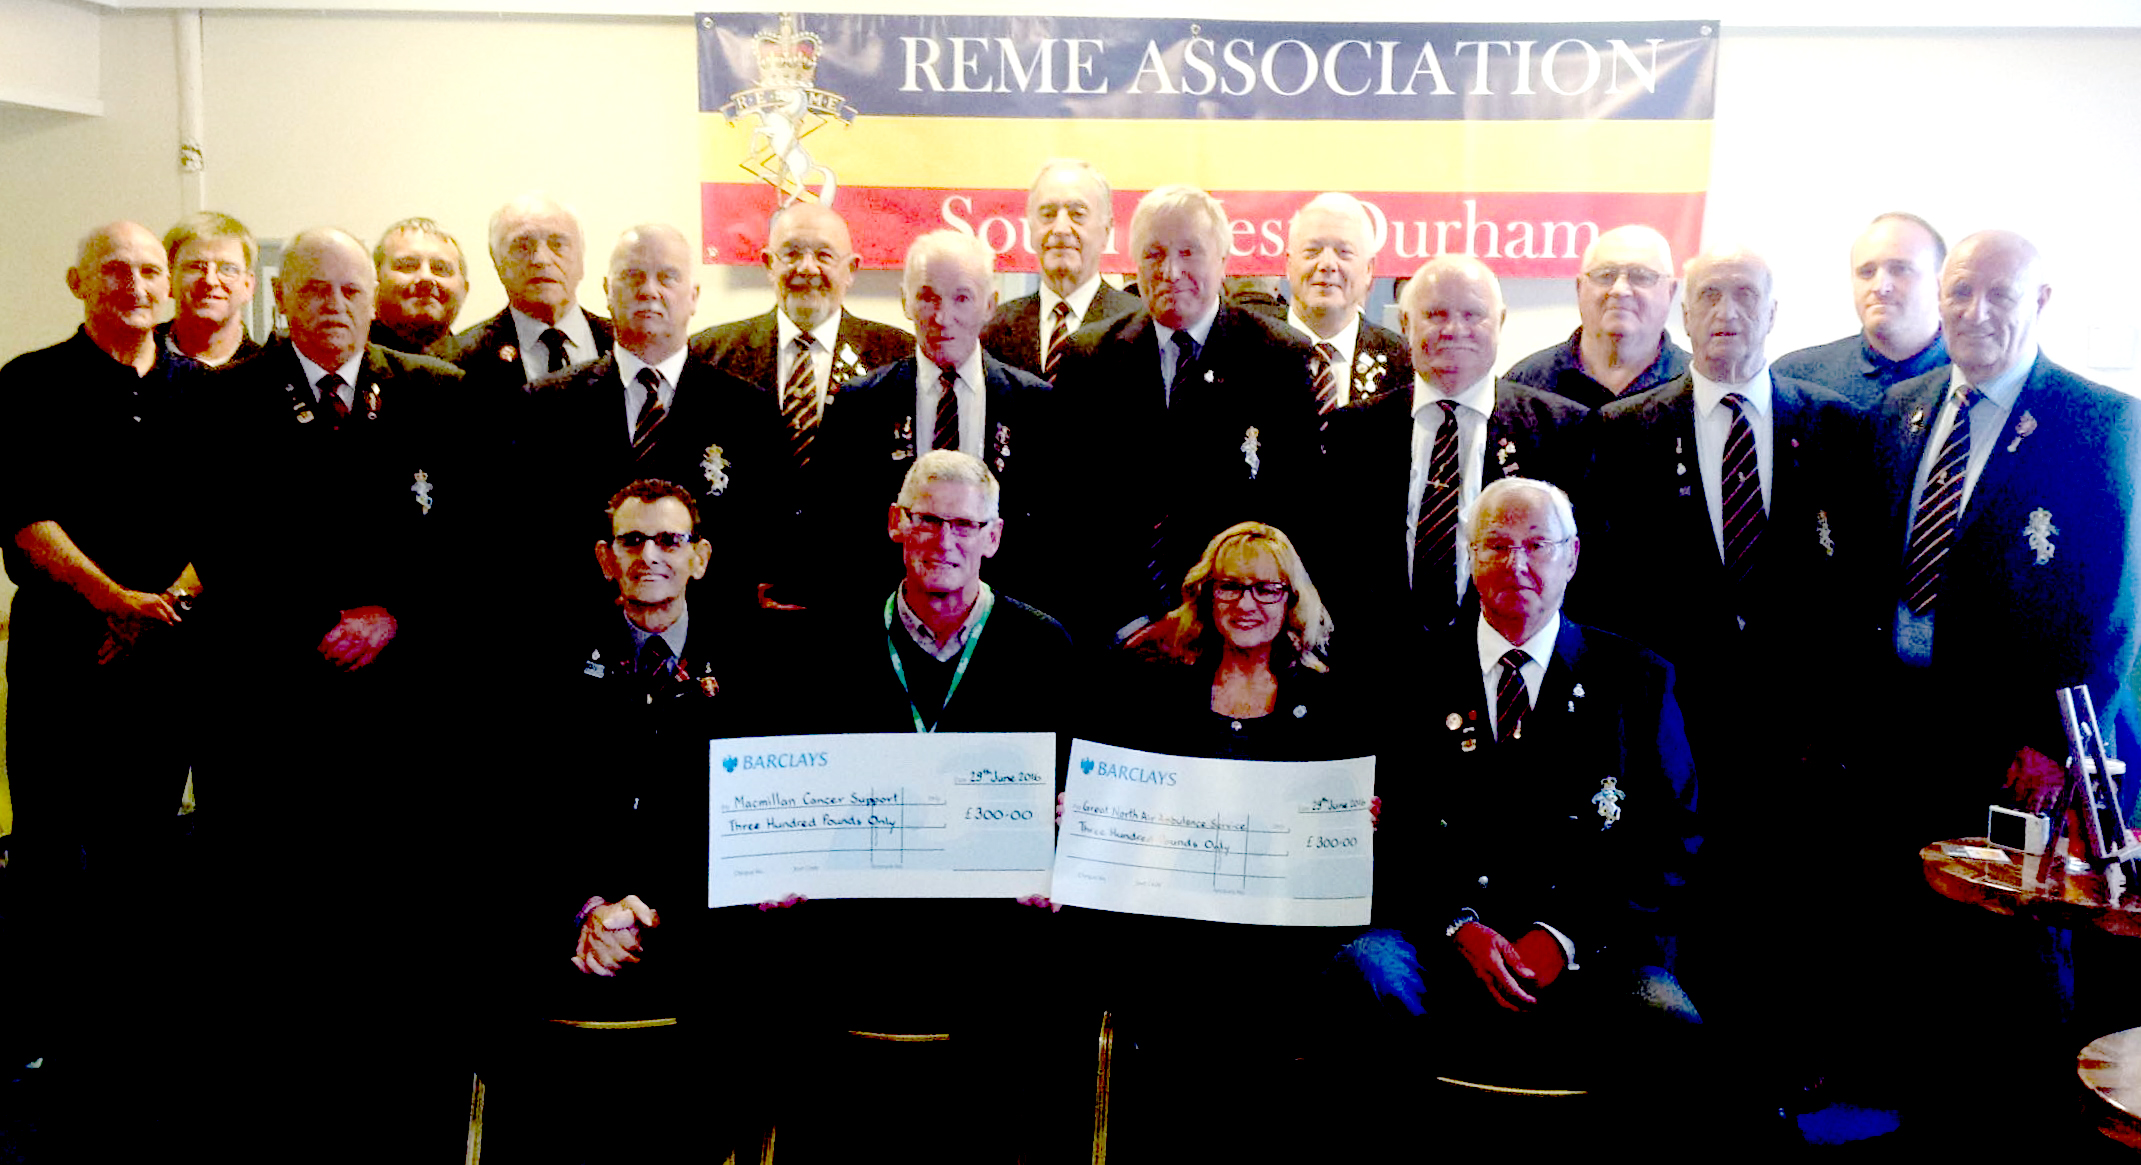 REME Association Donate £600 to Local Charities